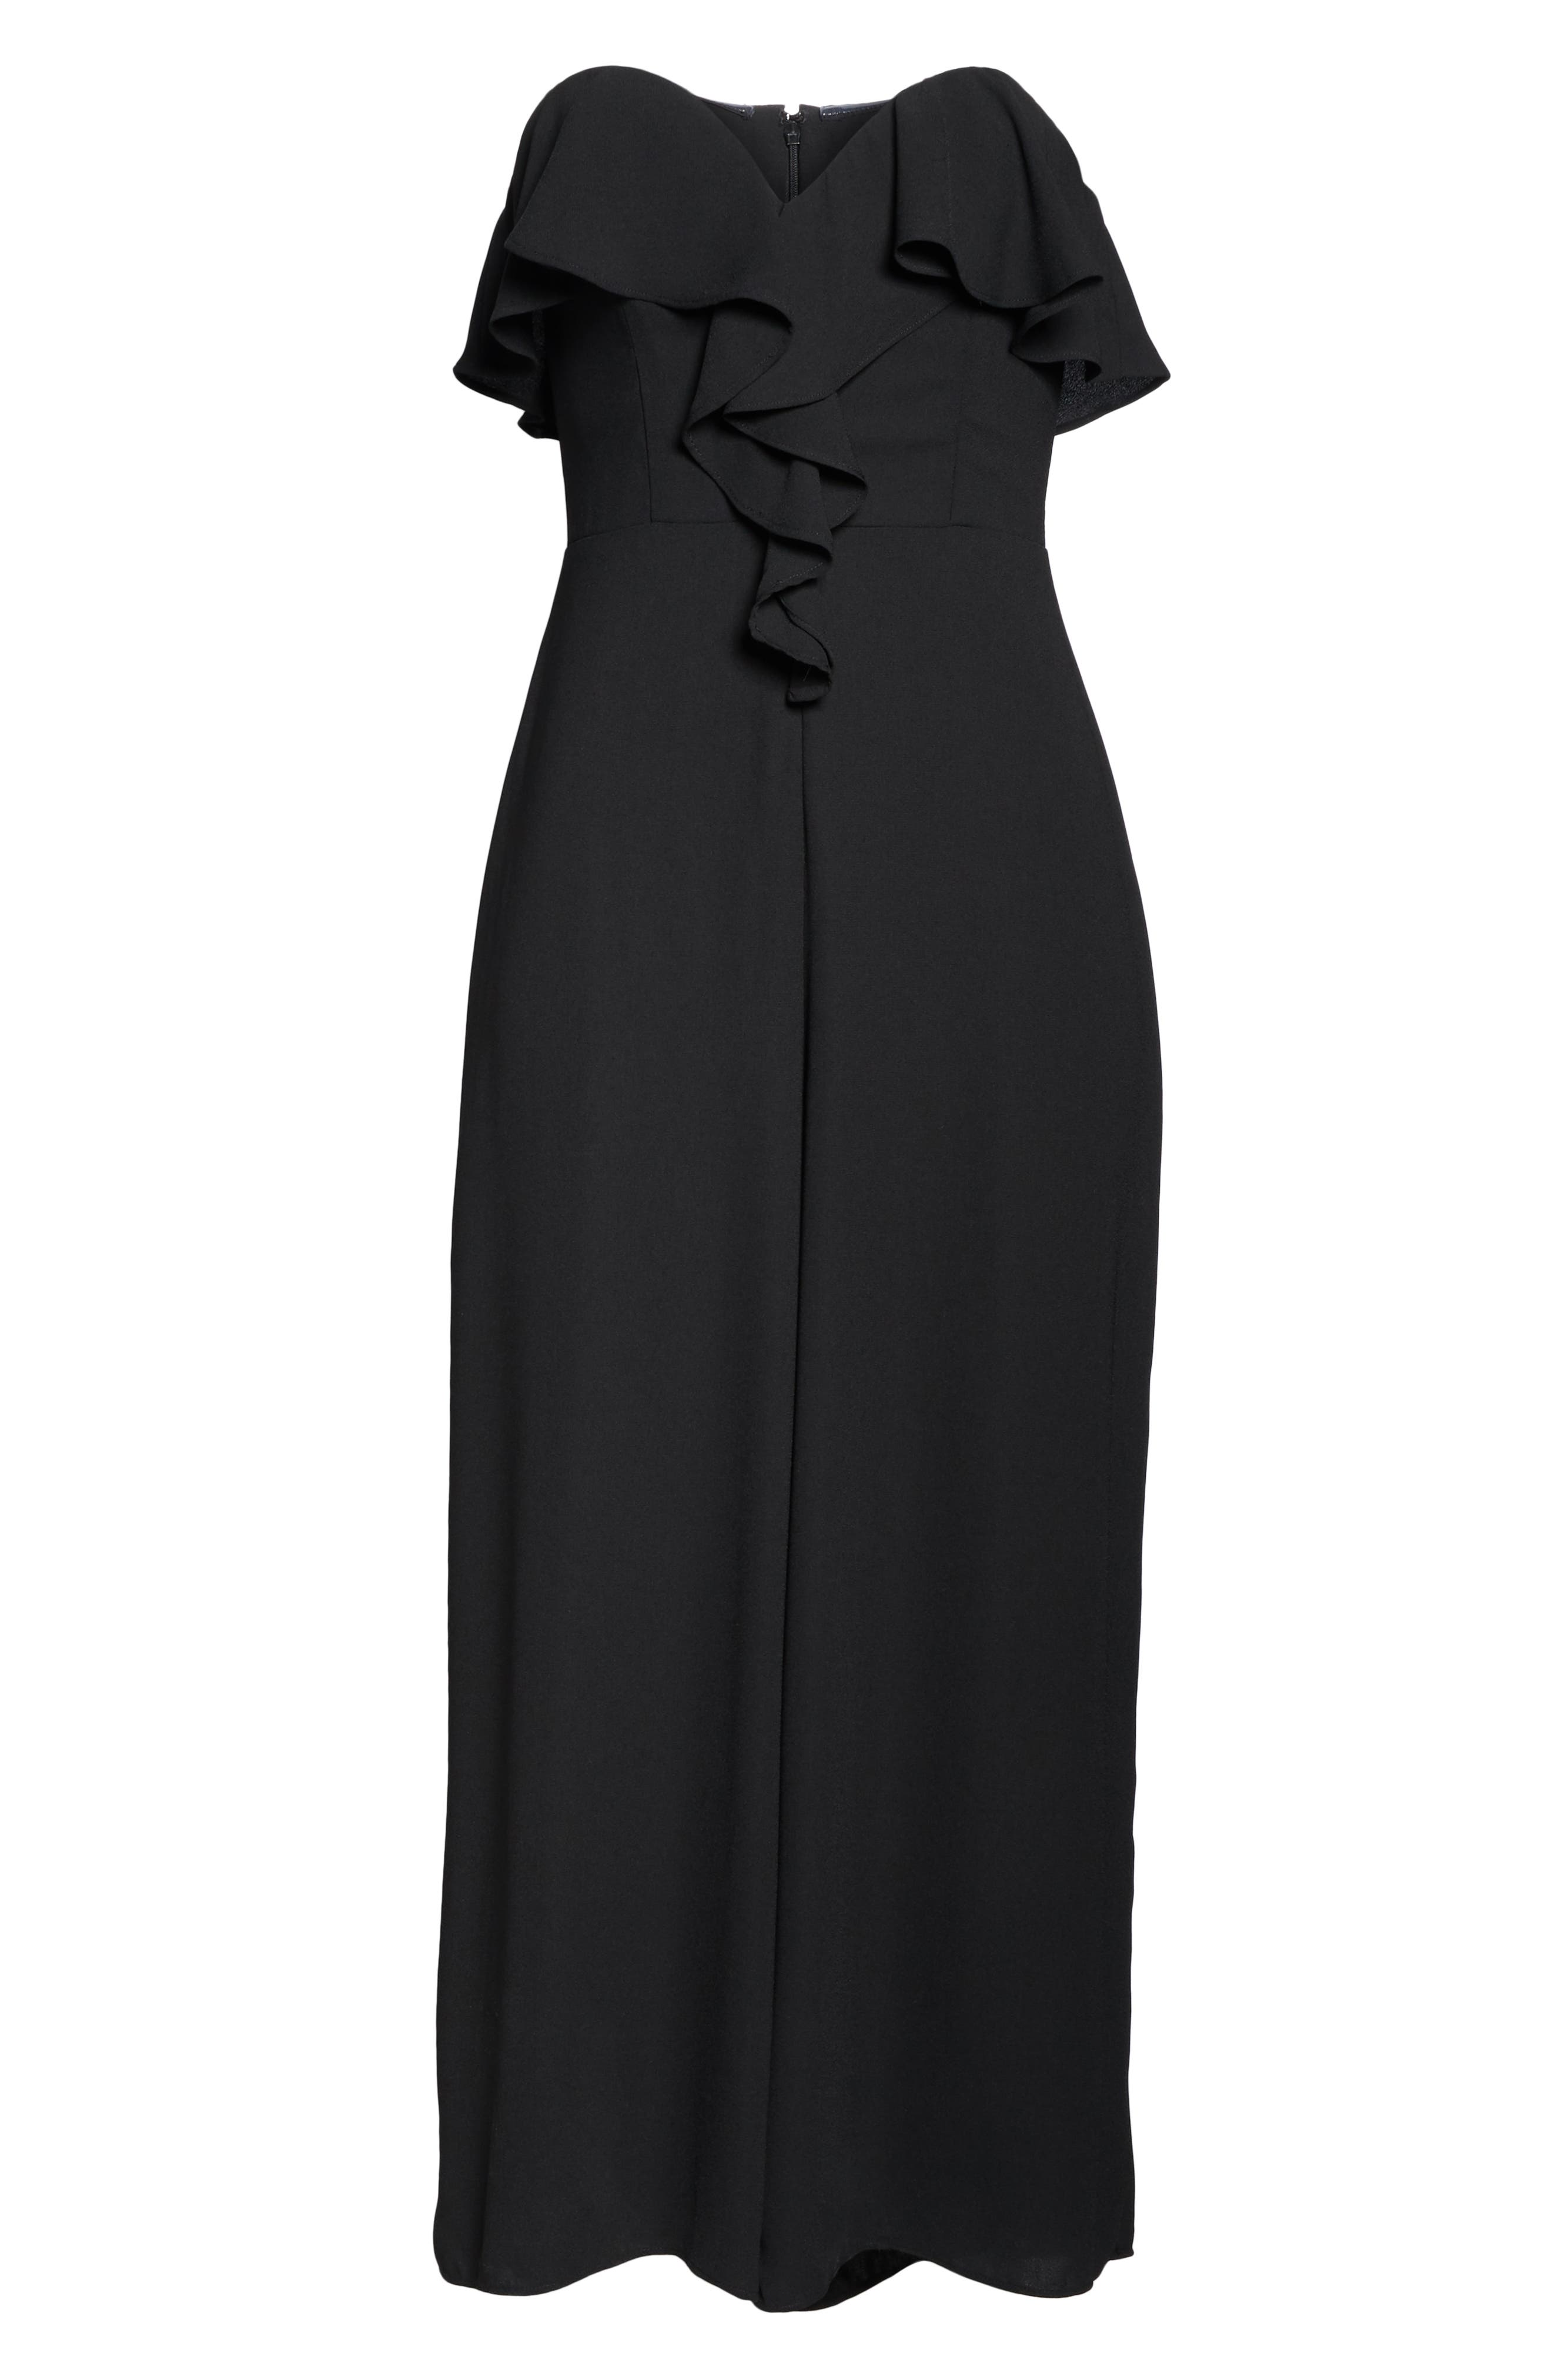 CHELSEA28,                             Strapless Ruffle Front Jumpsuit,                             Alternate thumbnail 7, color,                             BLACK